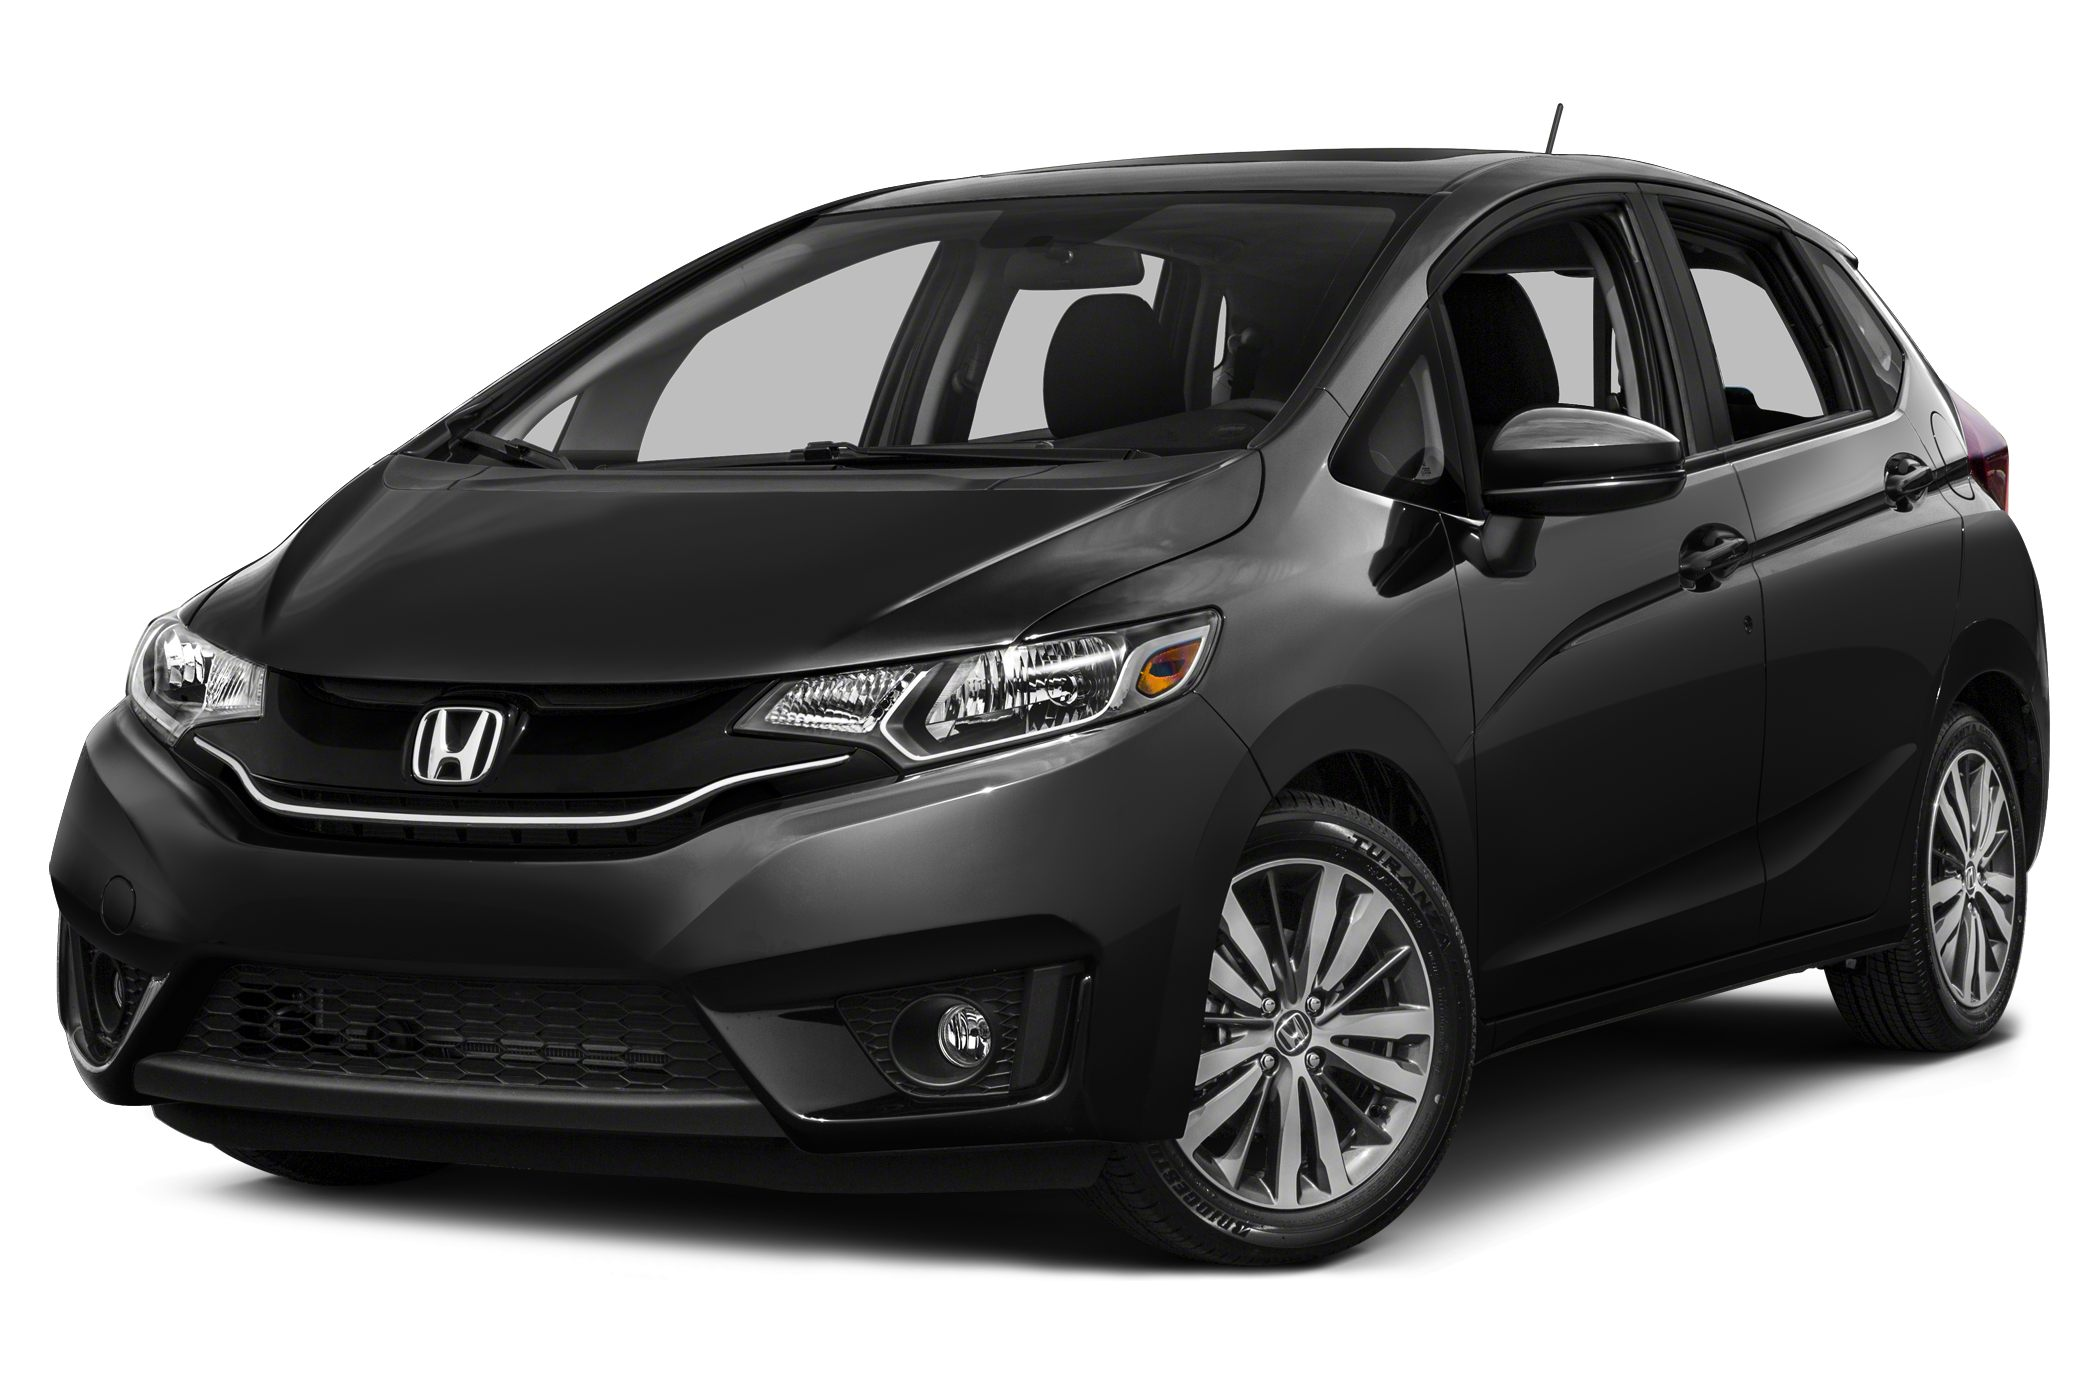 2015 Honda Fit EX Hatchback for sale in Tupelo for $19,180 with 10 miles